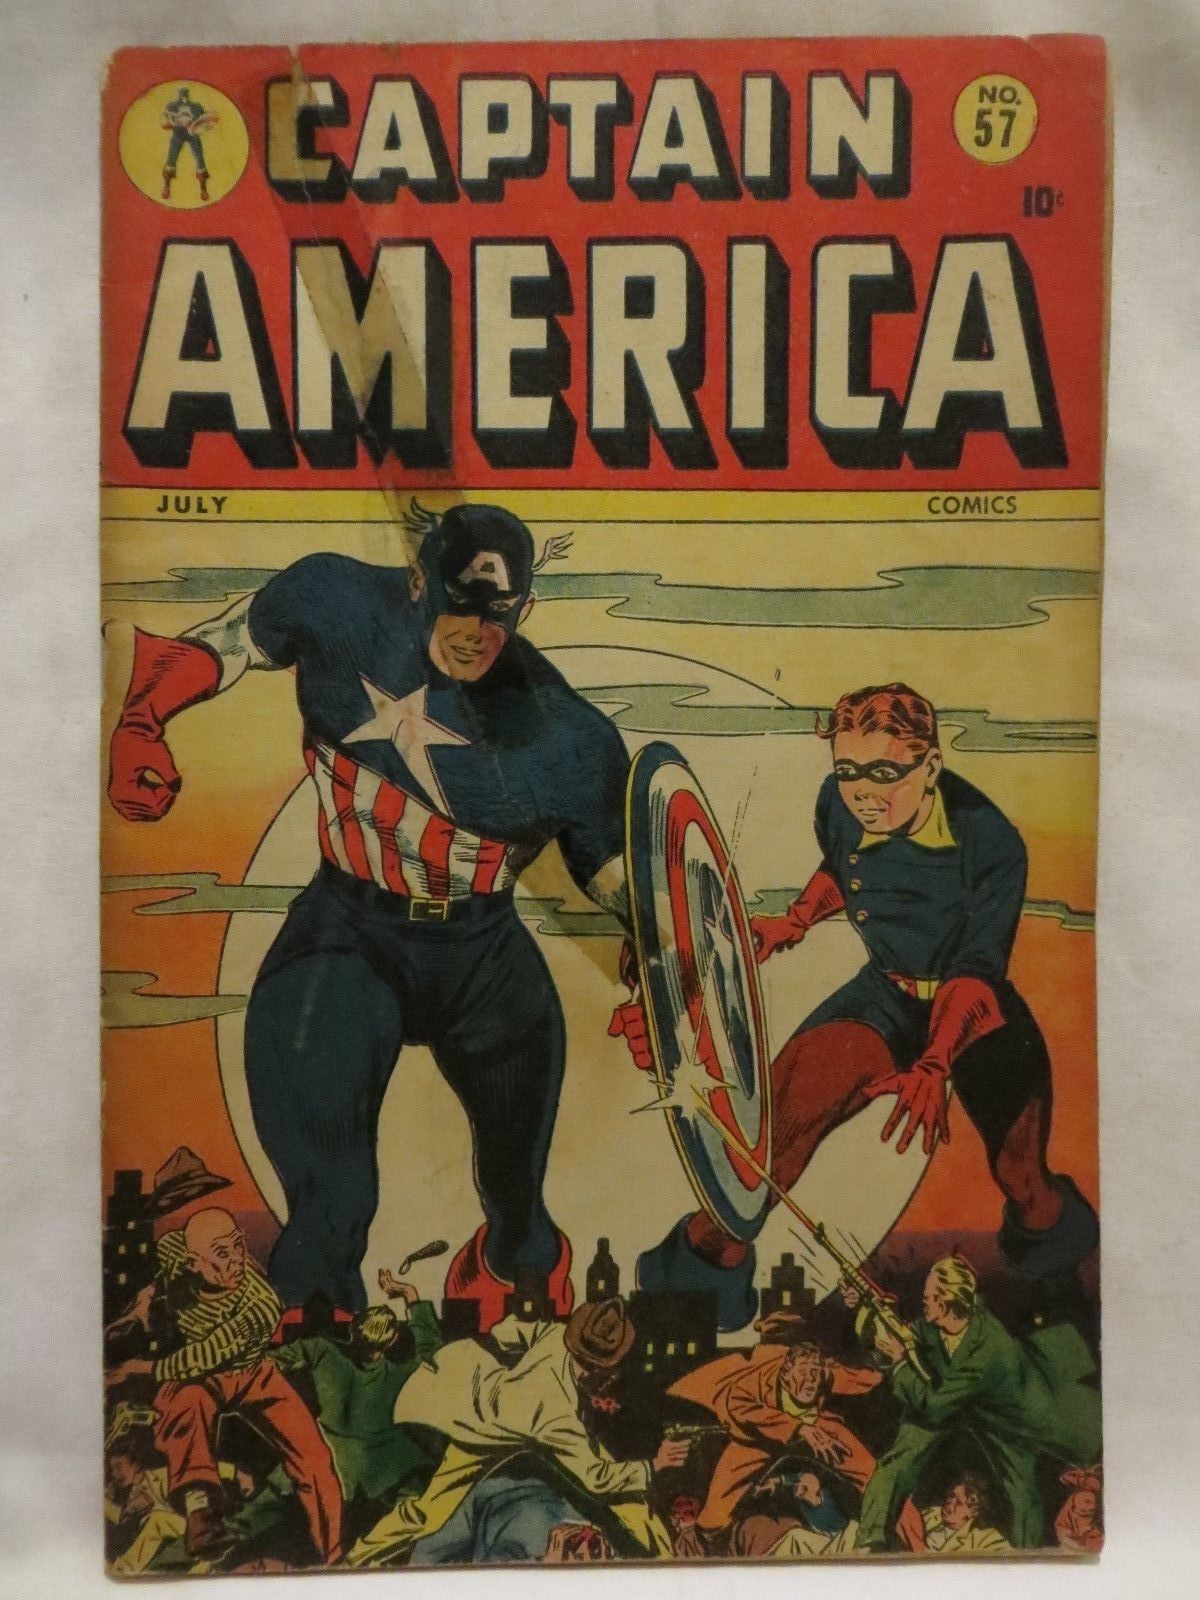 1946 CAPTAIN AMERICA COMICS..NO.57..TIMELY..MARVEL..RAW CLASSIC GOLDEN-AGE